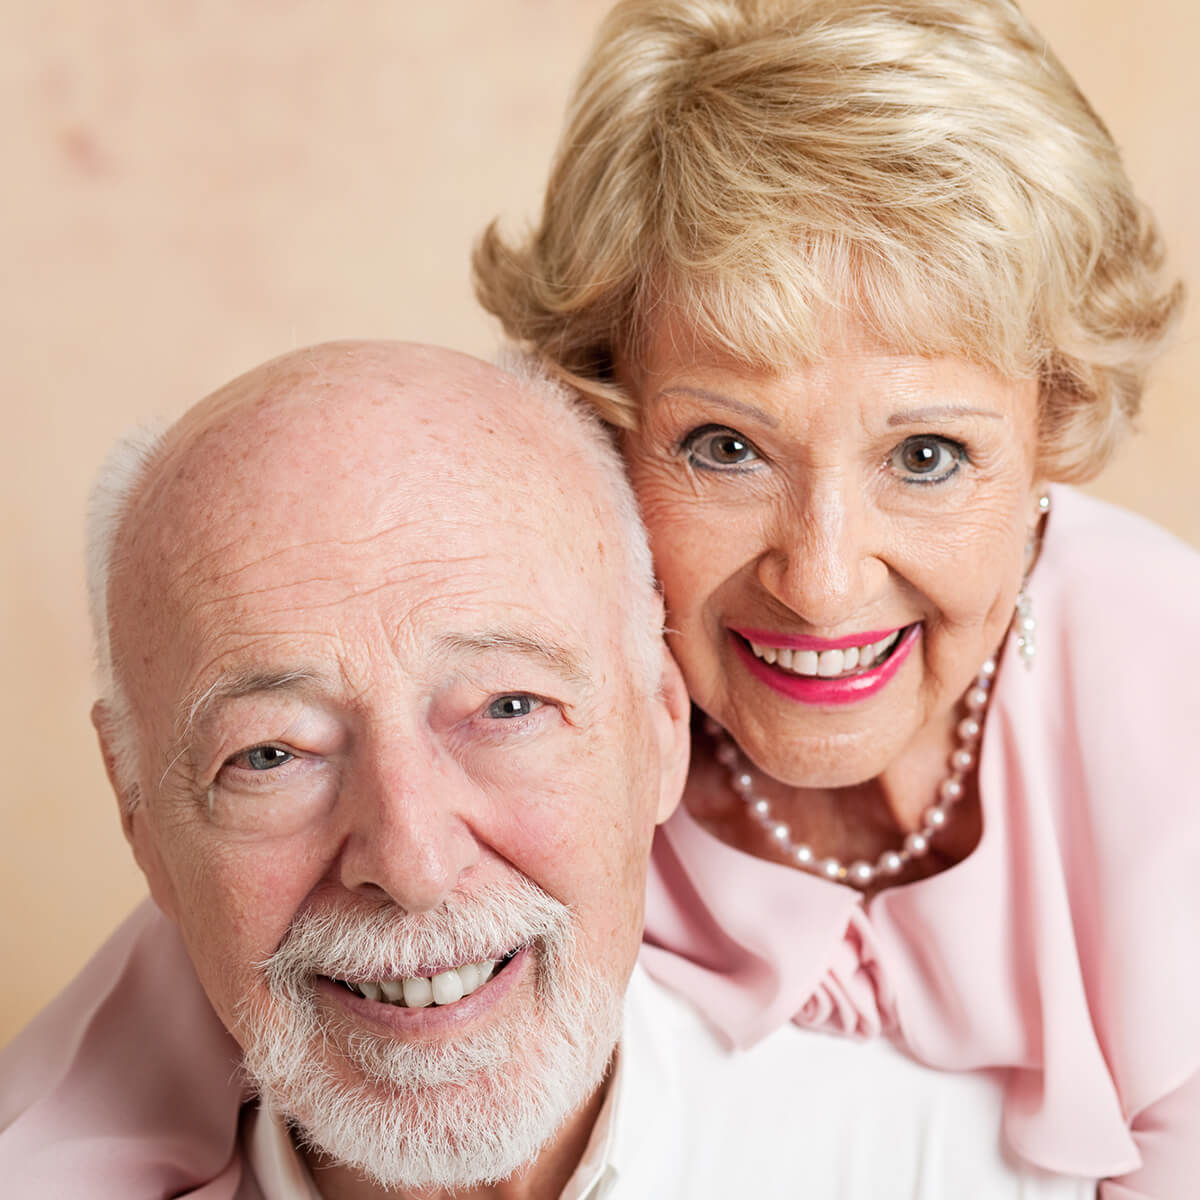 Dentures for Adults in El Dorado AR Area